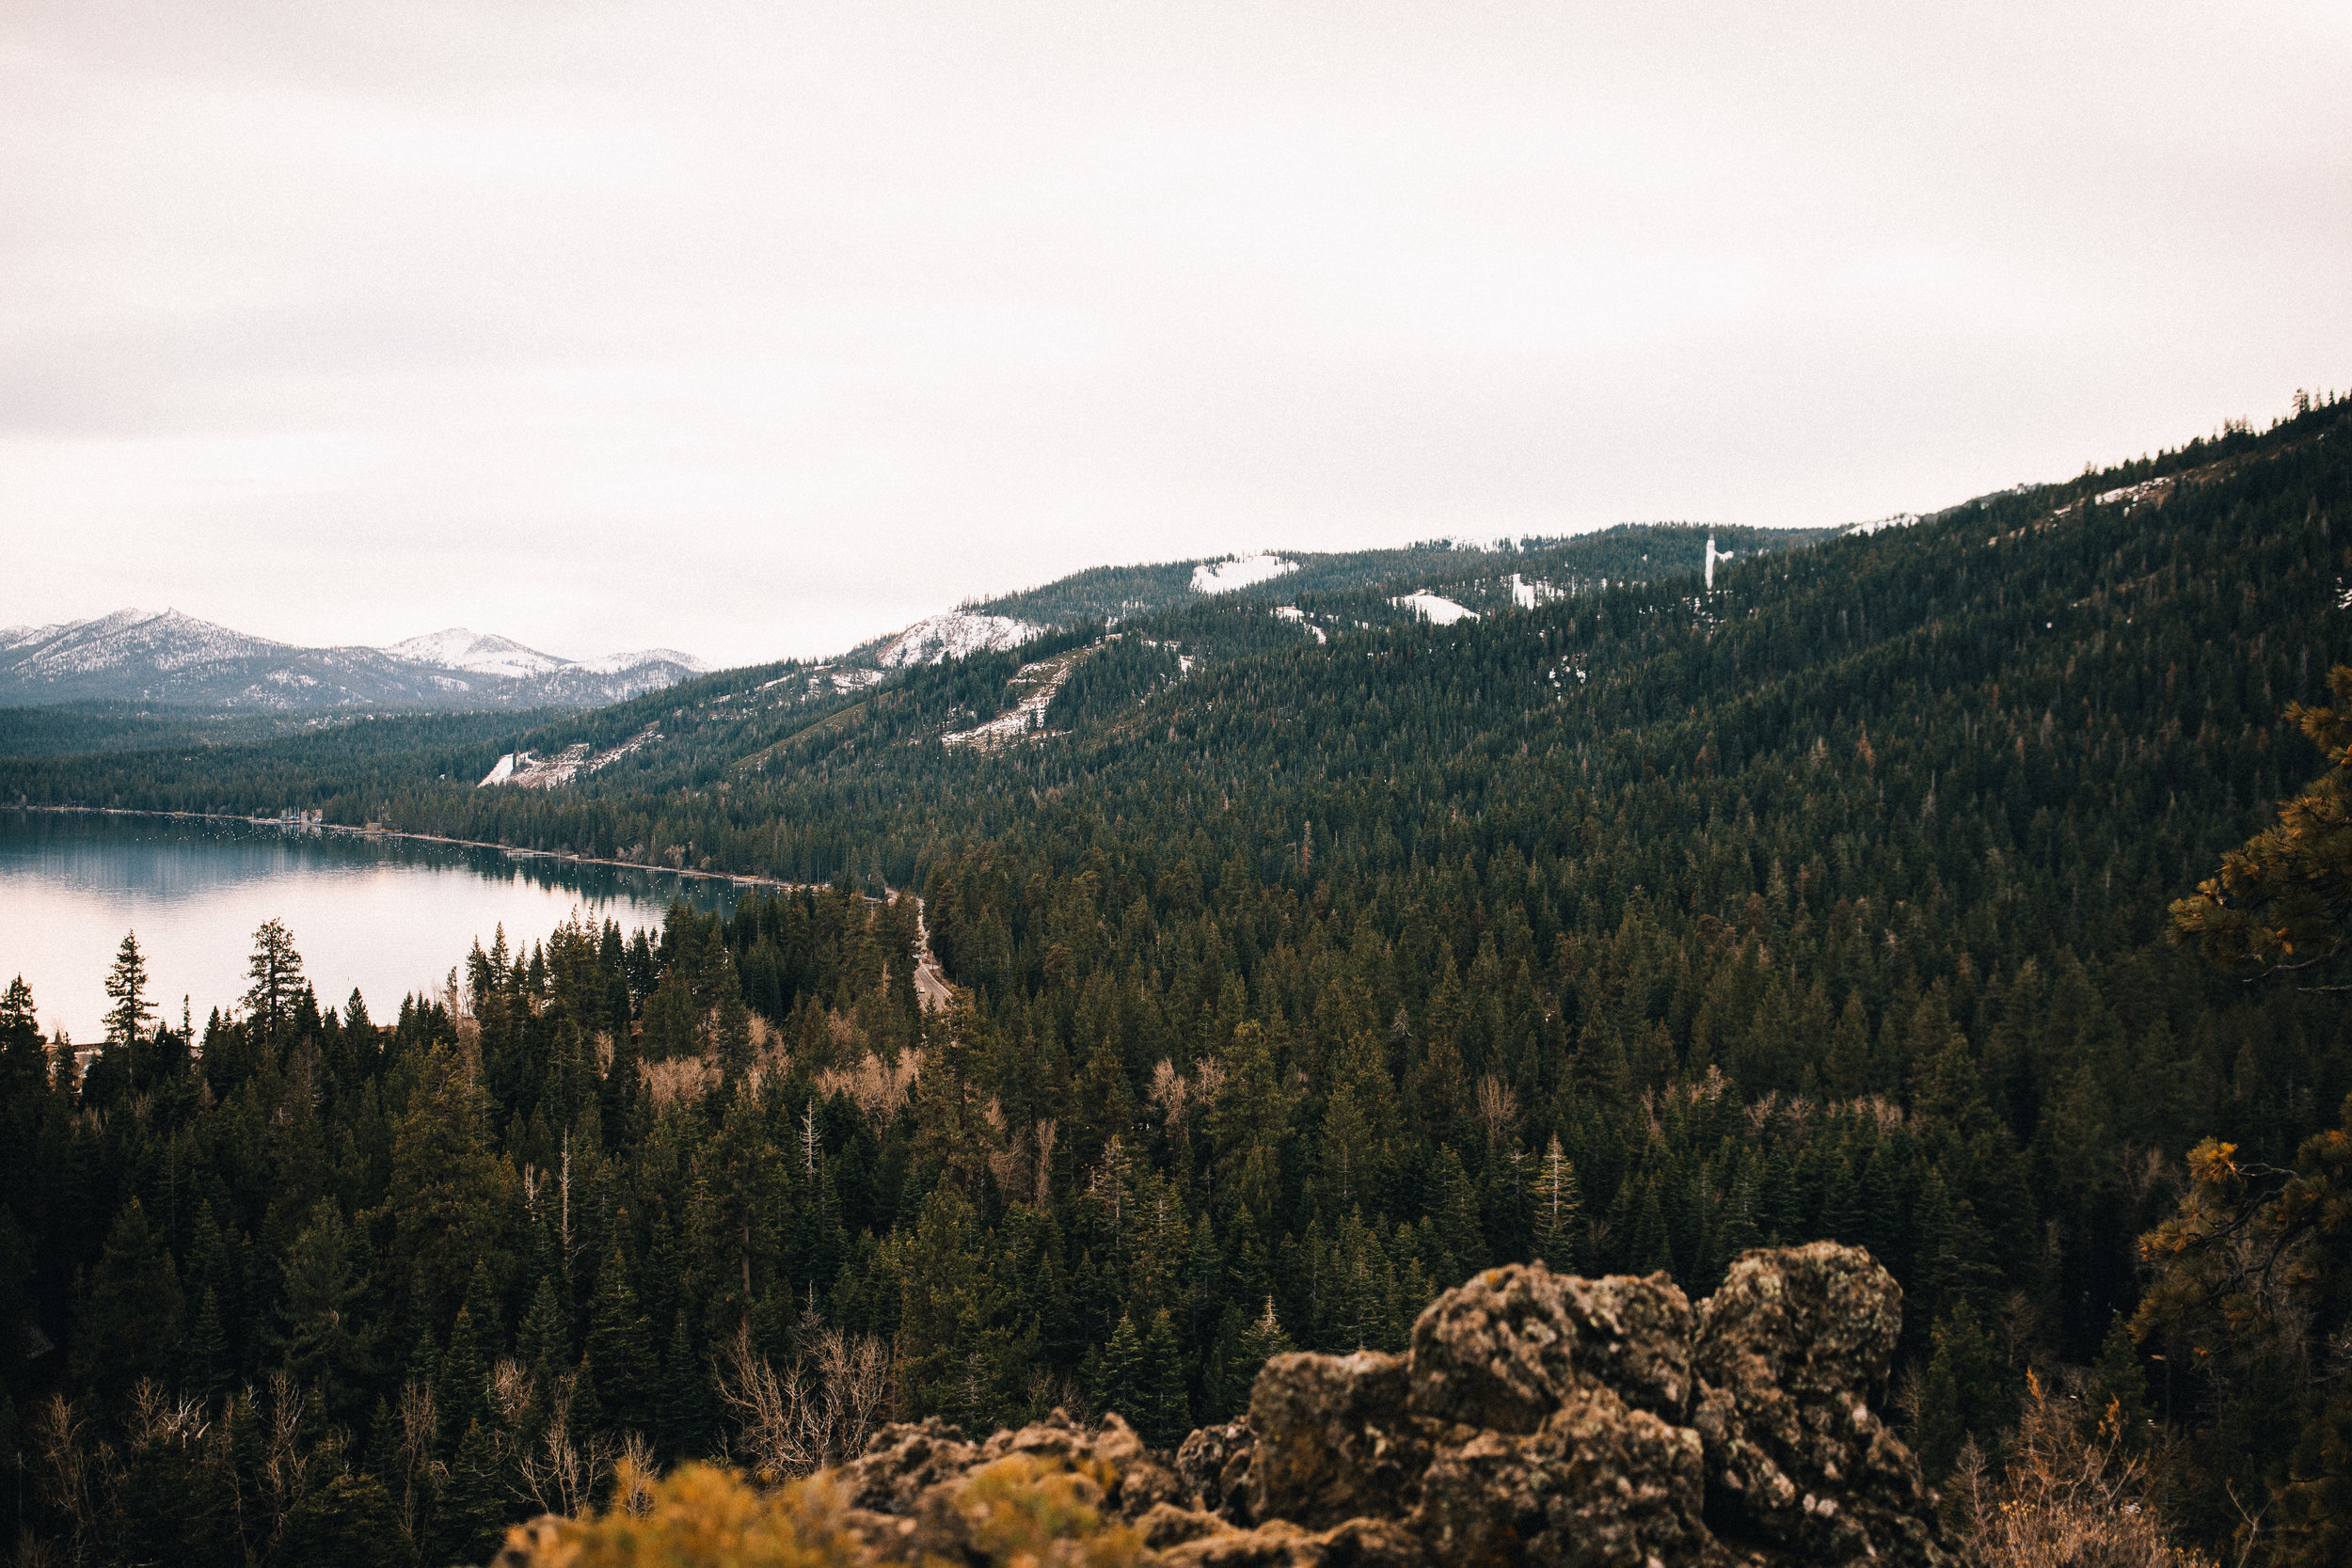 2018_01_01 Tahoe Trip 2018 Edited Full Resolution 0029.jpg